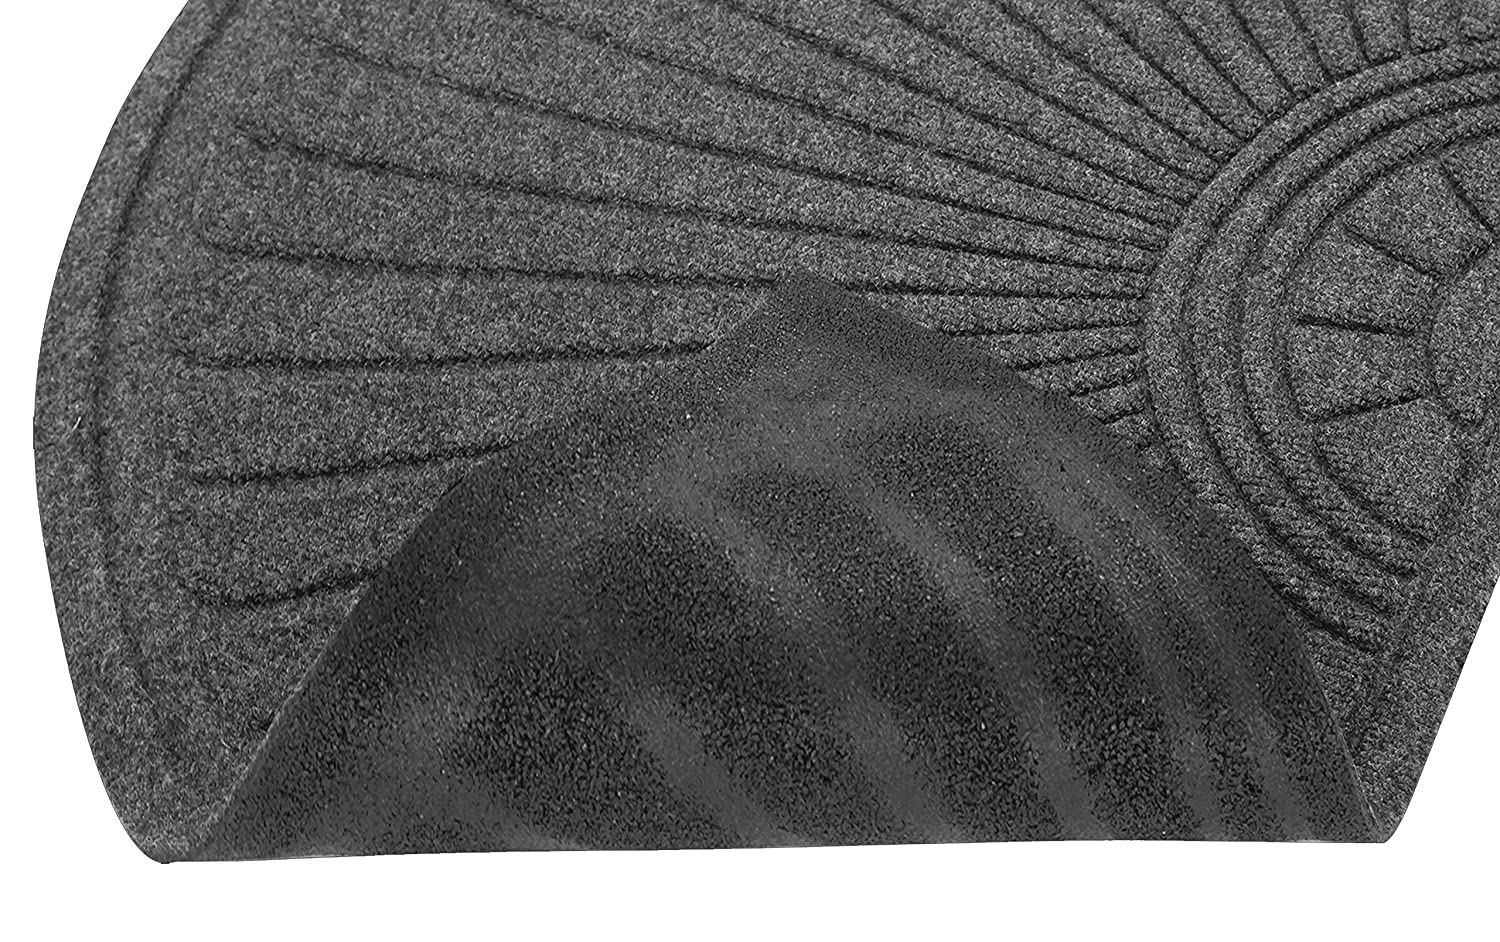 3x6 Charcoal Black Guardian EcoGuard Diamond w//Single Fan Indoor Wiper Floor Mat Recycled Plactic and Rubber